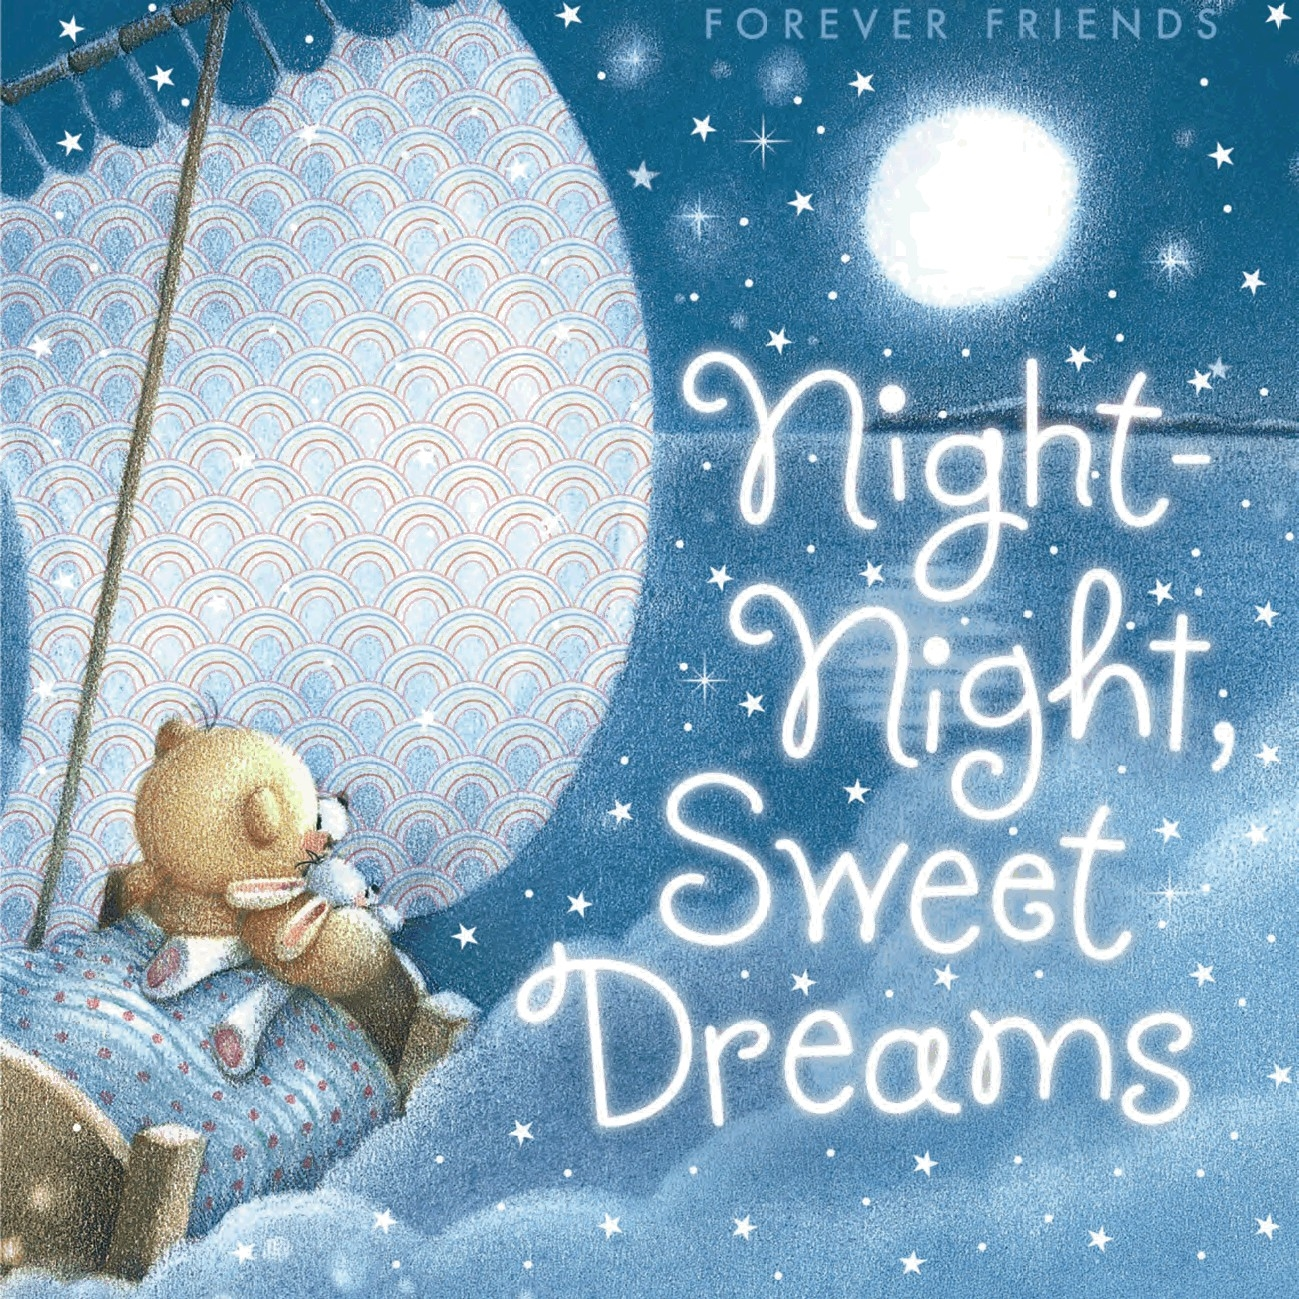 Nice Good Night Quotes With Images: Night Night Sweet Dreams Pictures, Photos, And Images For